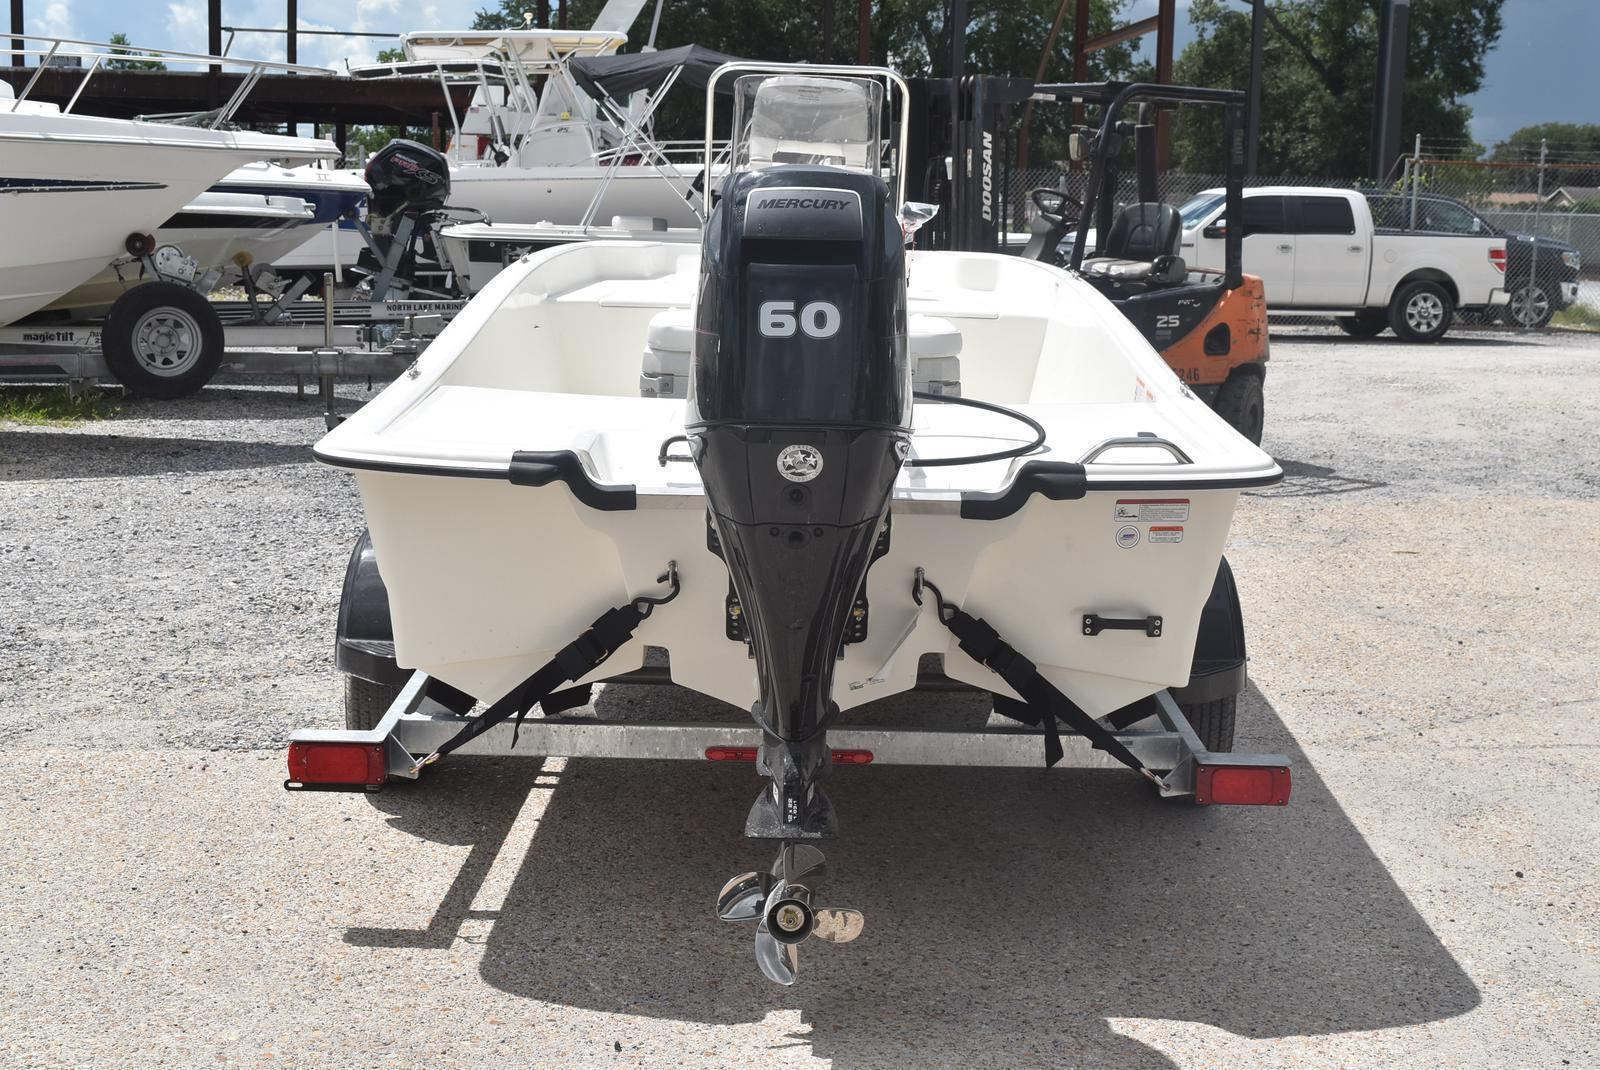 2020 Mako boat for sale, model of the boat is Pro Skiff 17, 75 ELPT & Image # 566 of 702